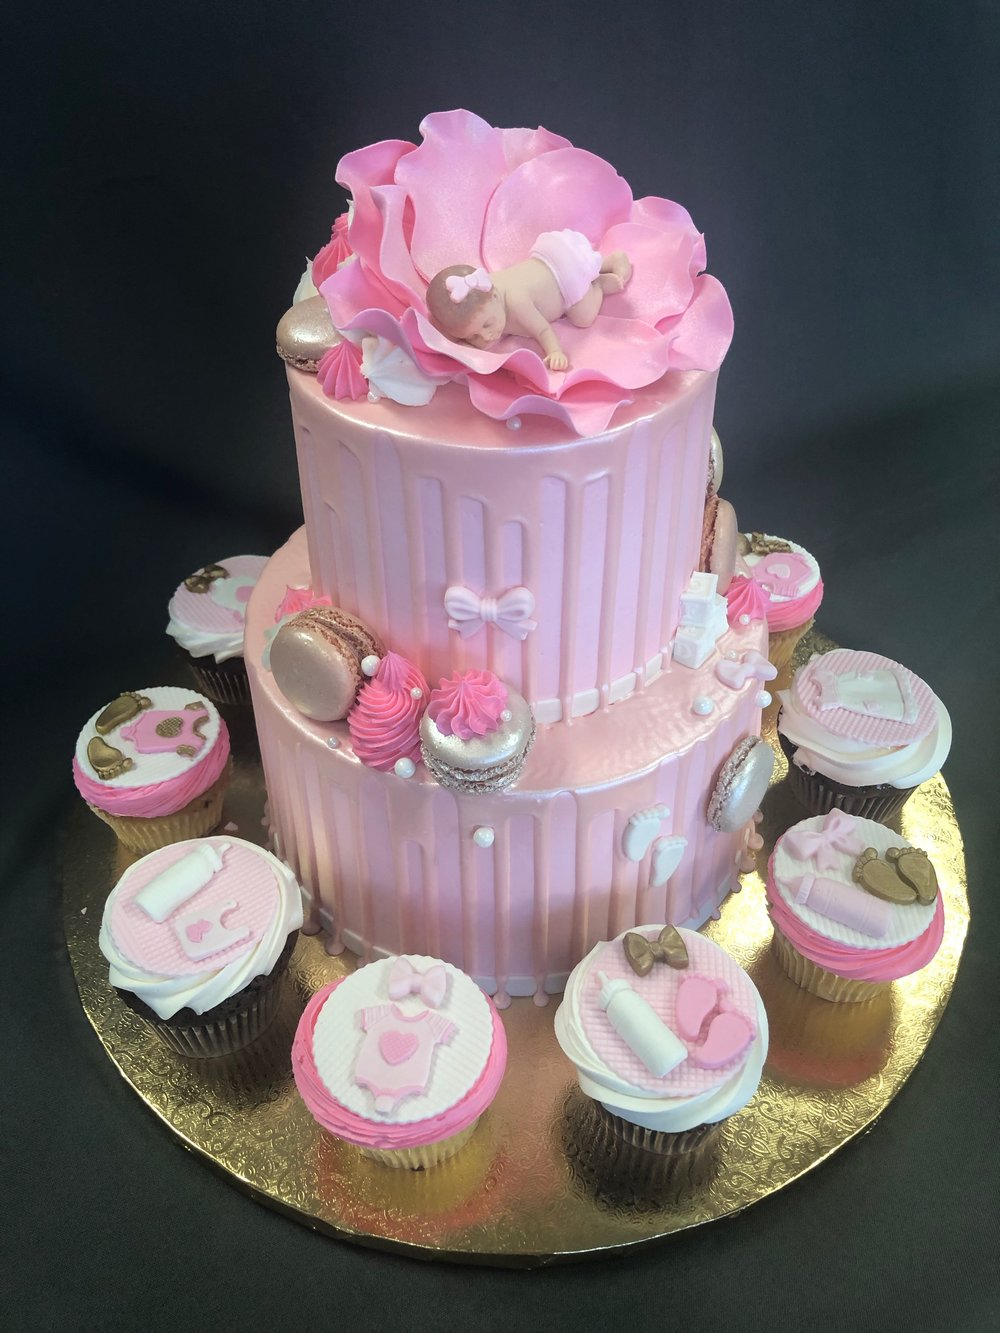 Best Baby Shower Cake NJ